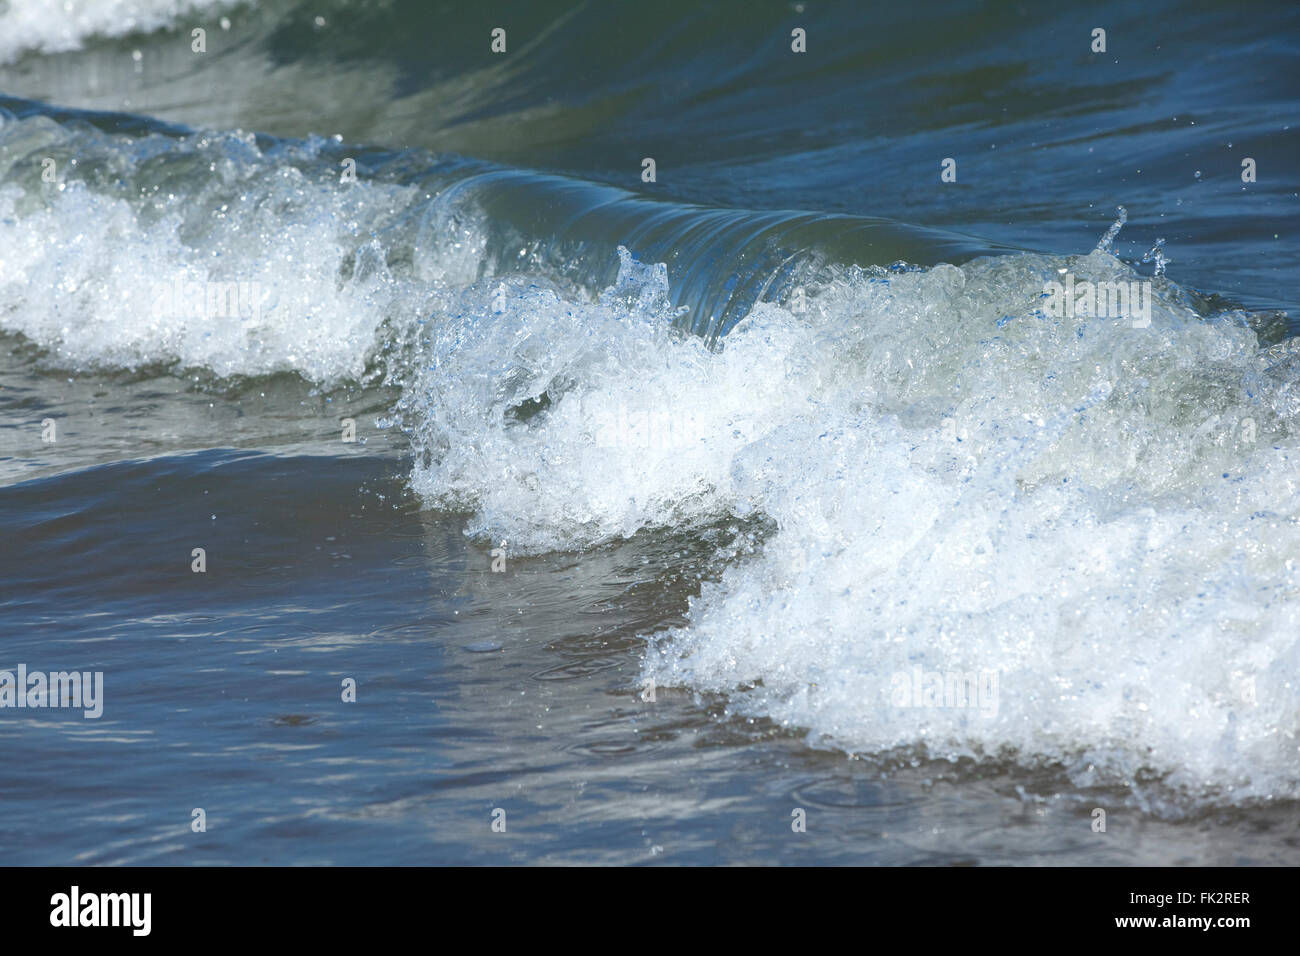 Sea waves of the North Sea - Stock Image